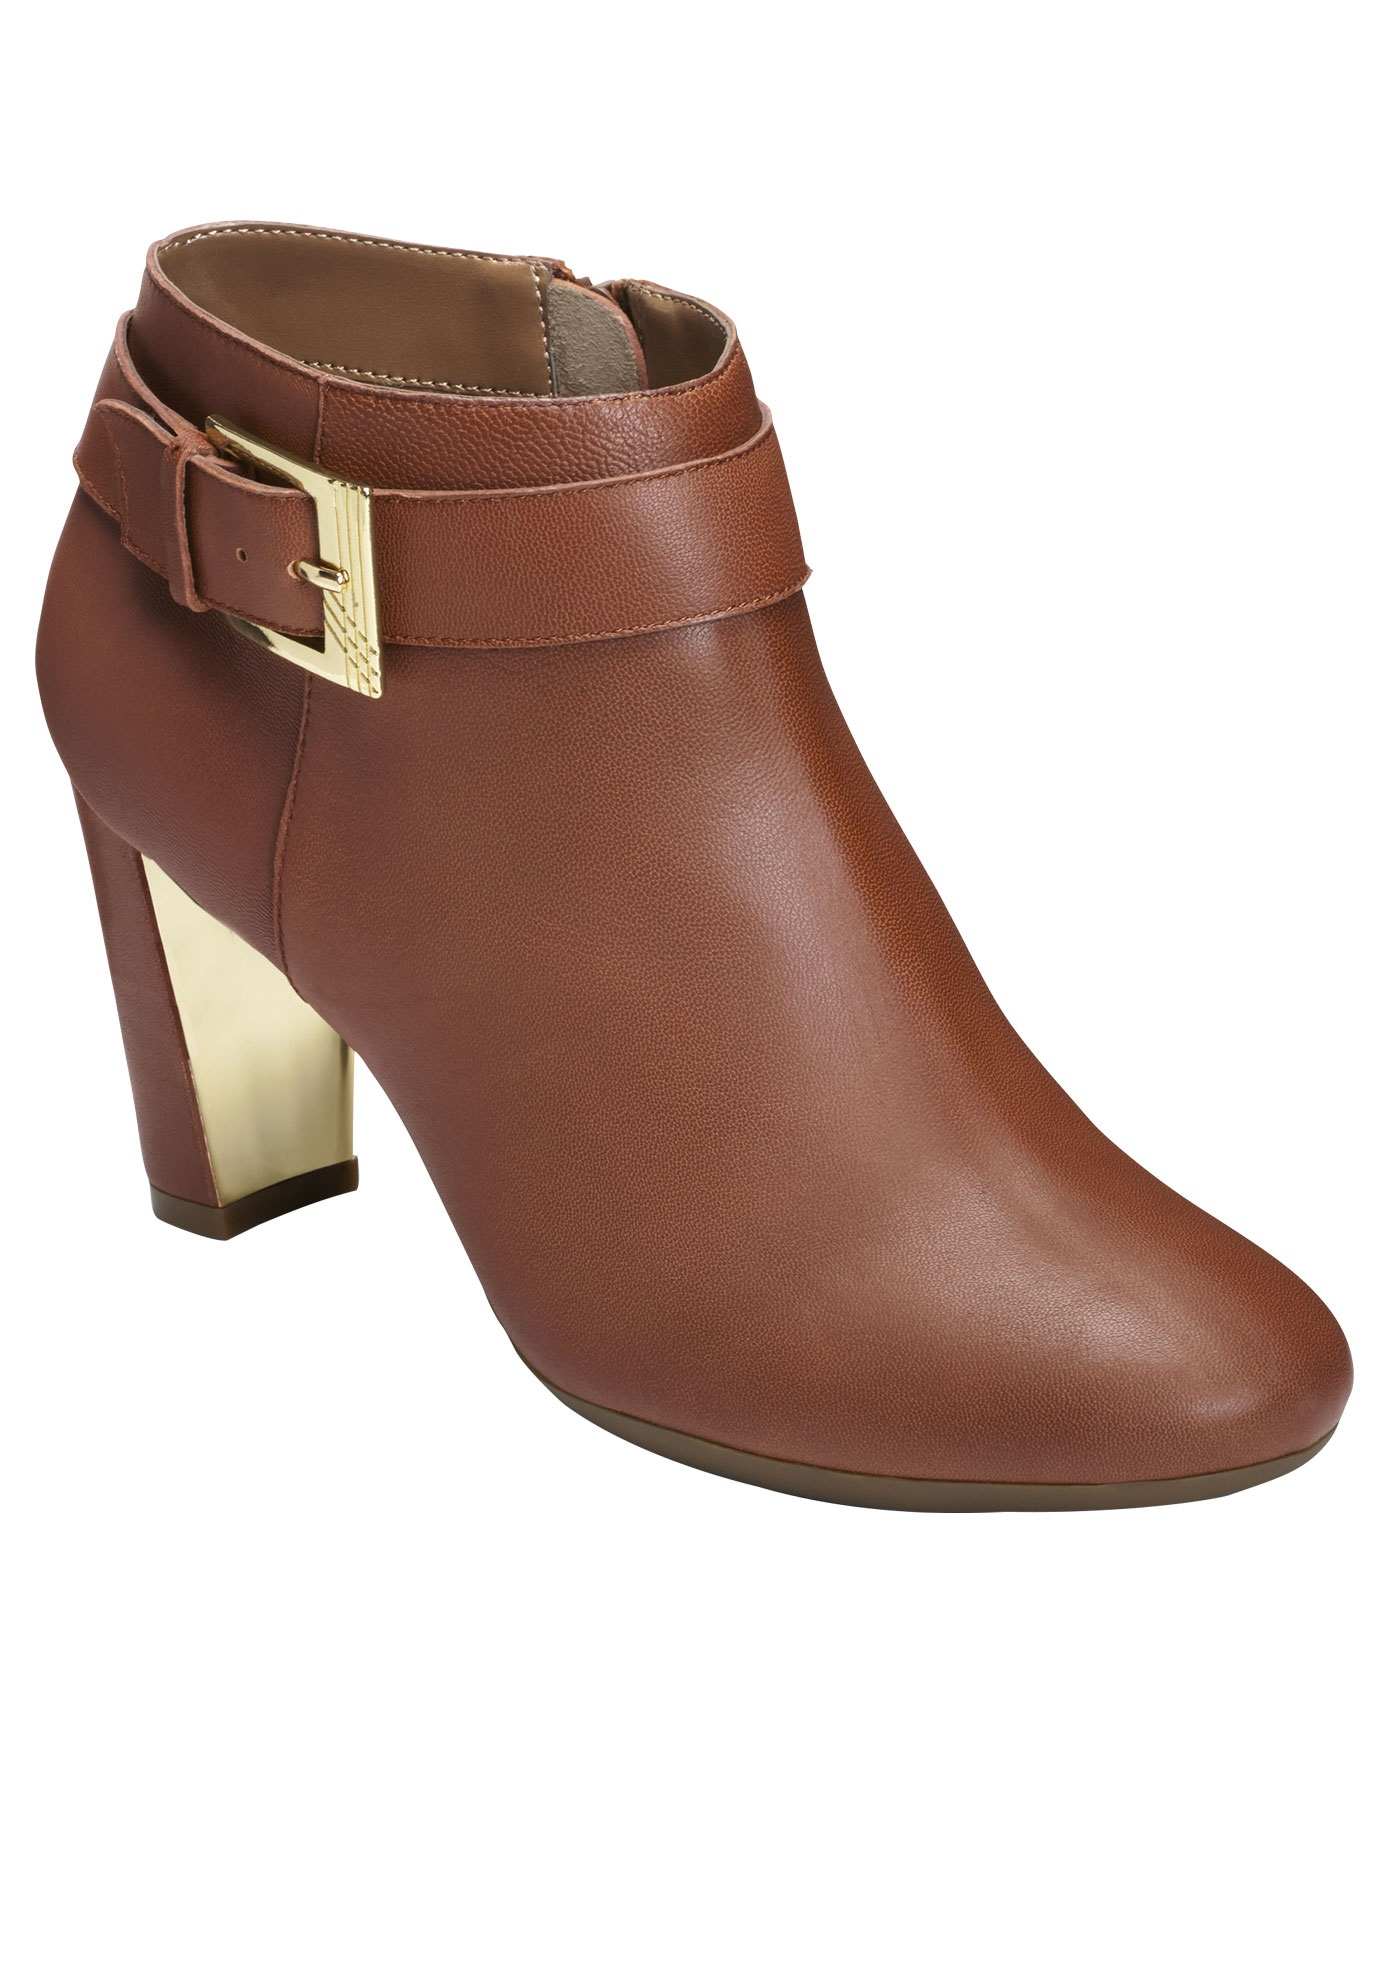 Third Ave Booties by Aerosoles®, DARK TAN LEATHER, hi-res